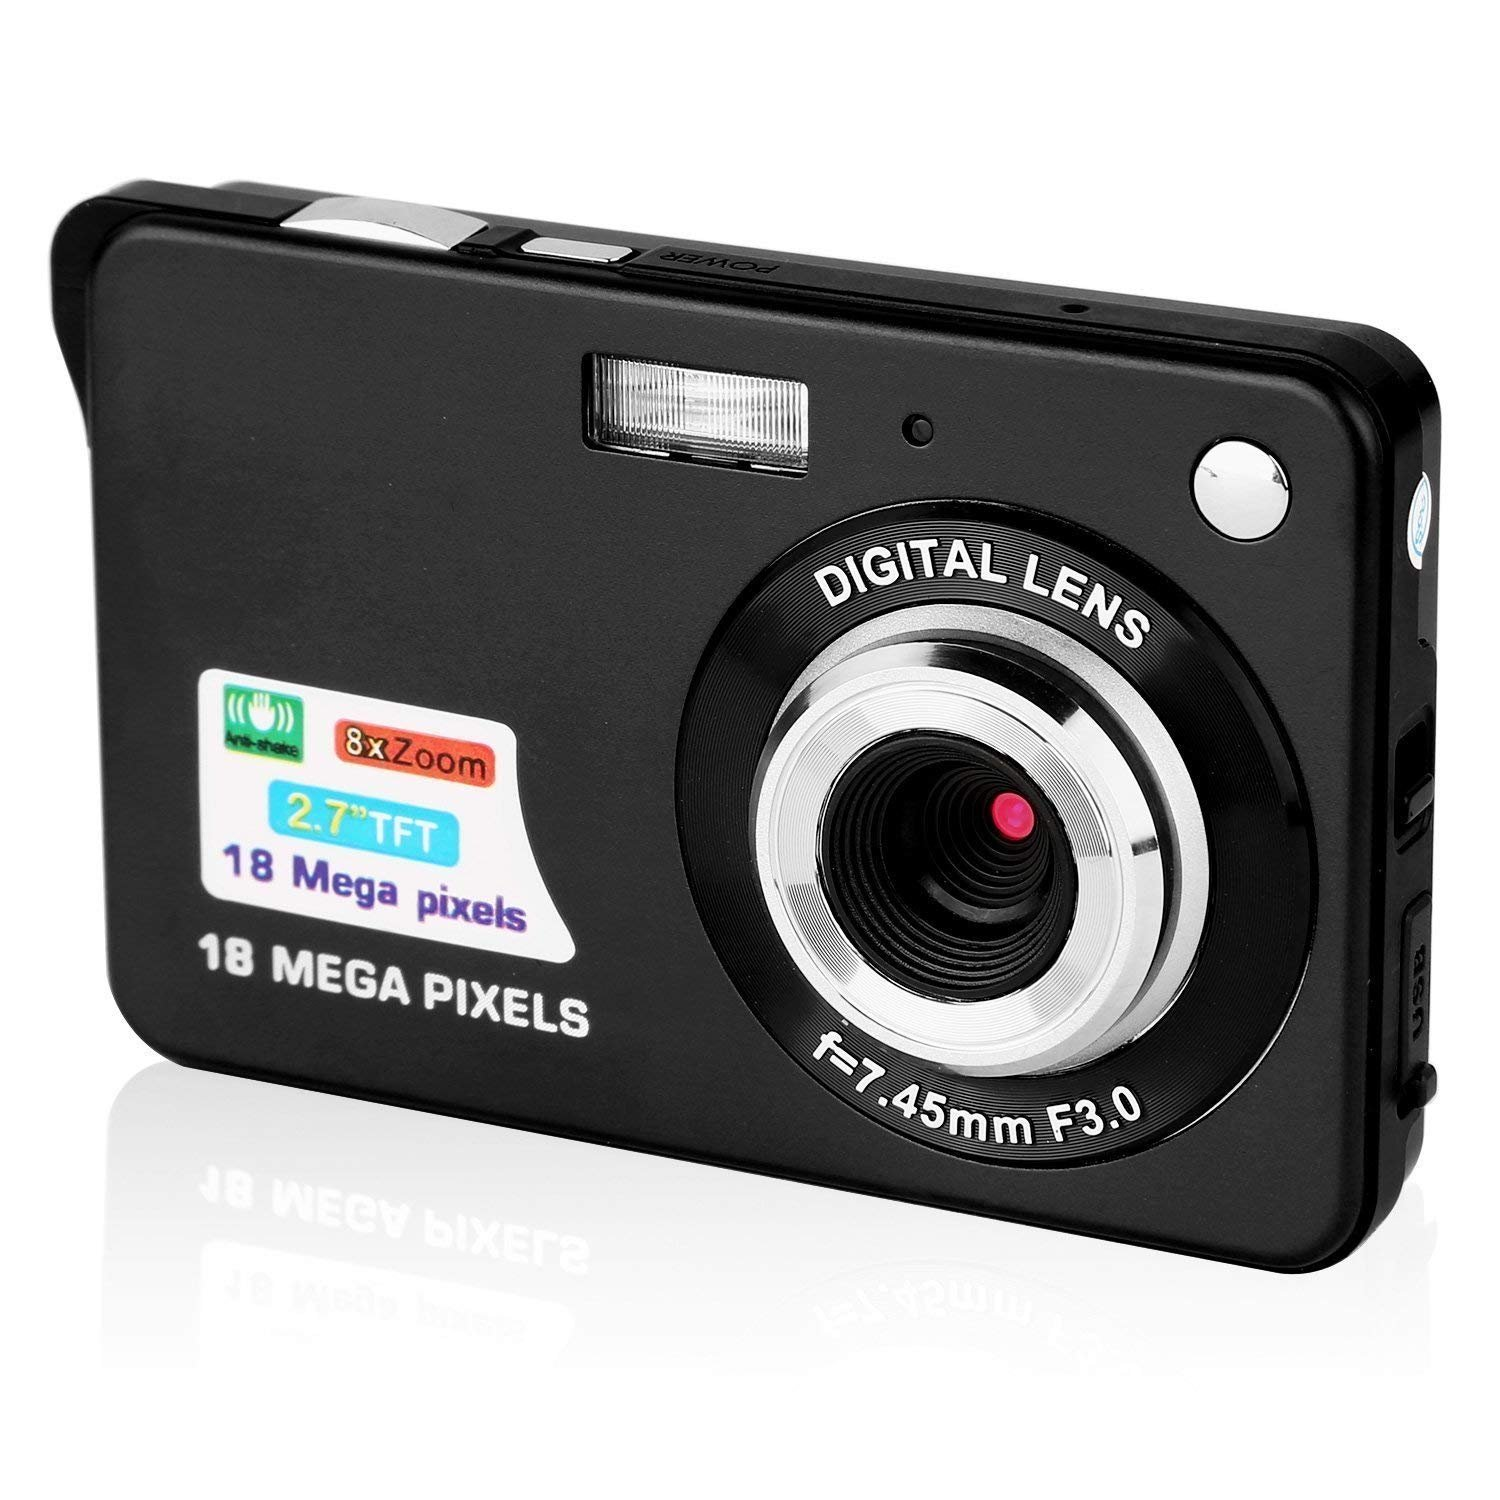 GordVE 2.7 Inch Digital Camera, HD Camera for Backpacking, Mini Digital Camera Pocket Cameras Digital with Zoom, Compact Cameras for Photography by GordVE